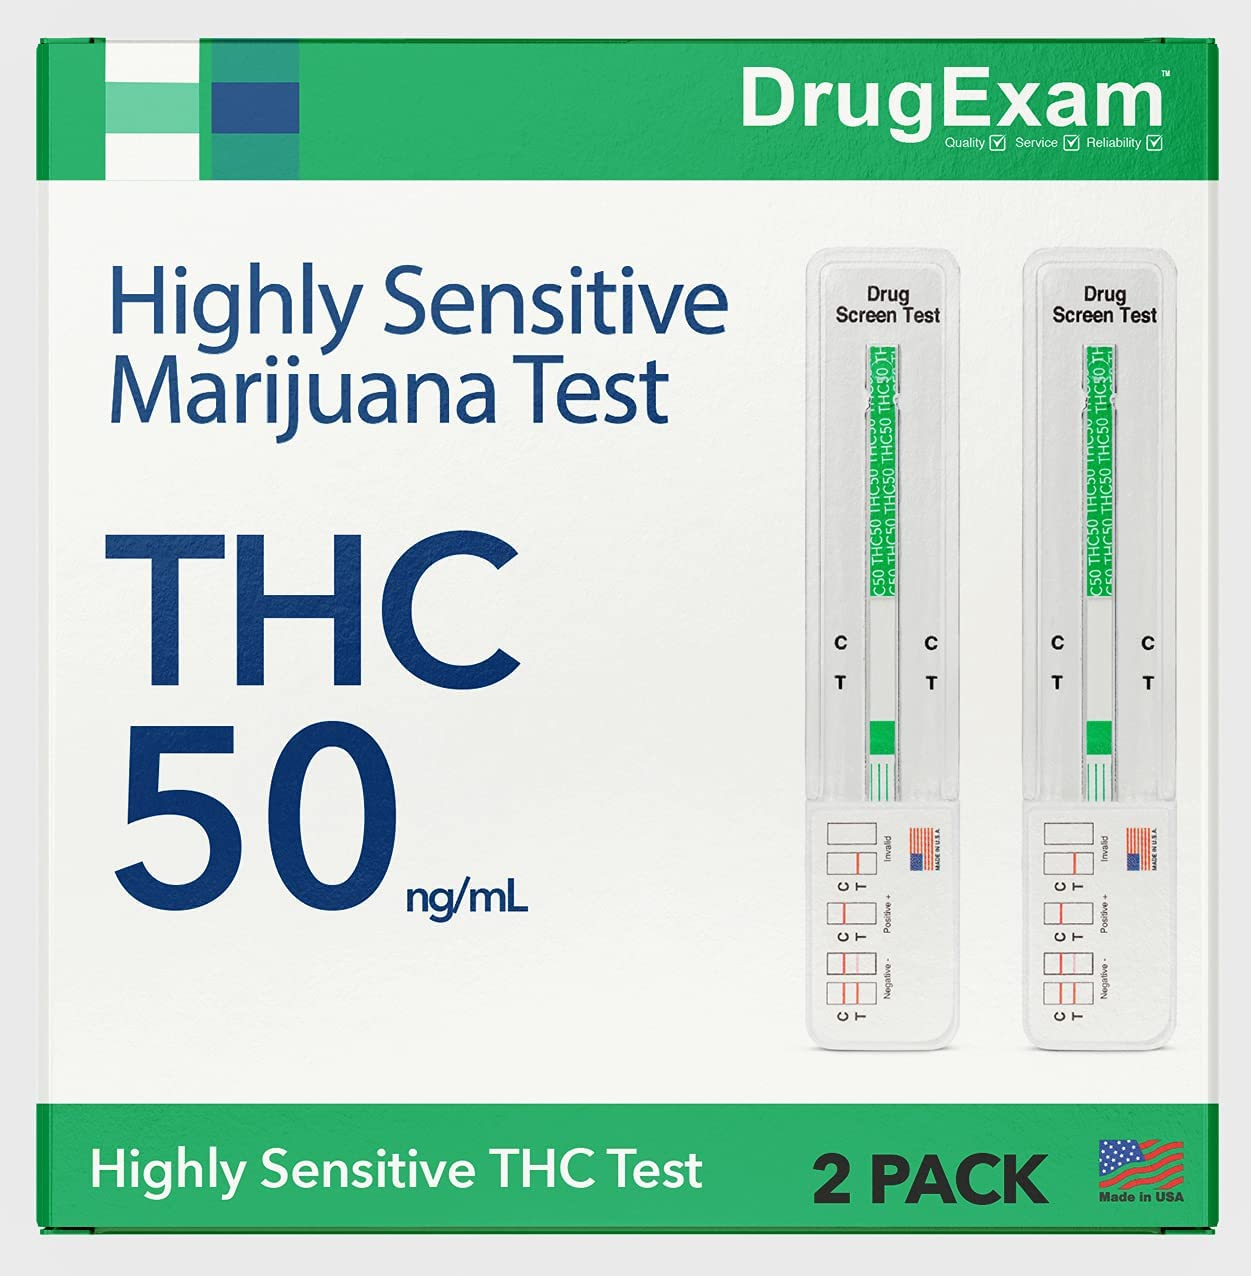 2 Pack - DrugExam Made in USA Highly Sensitive Marijuana THC Single Panel Drug Test Kit - Marijuana Drug Test with 50 ng/mL Cutoff Level for Detecting Any Form of THC in Urine up to 45 Days